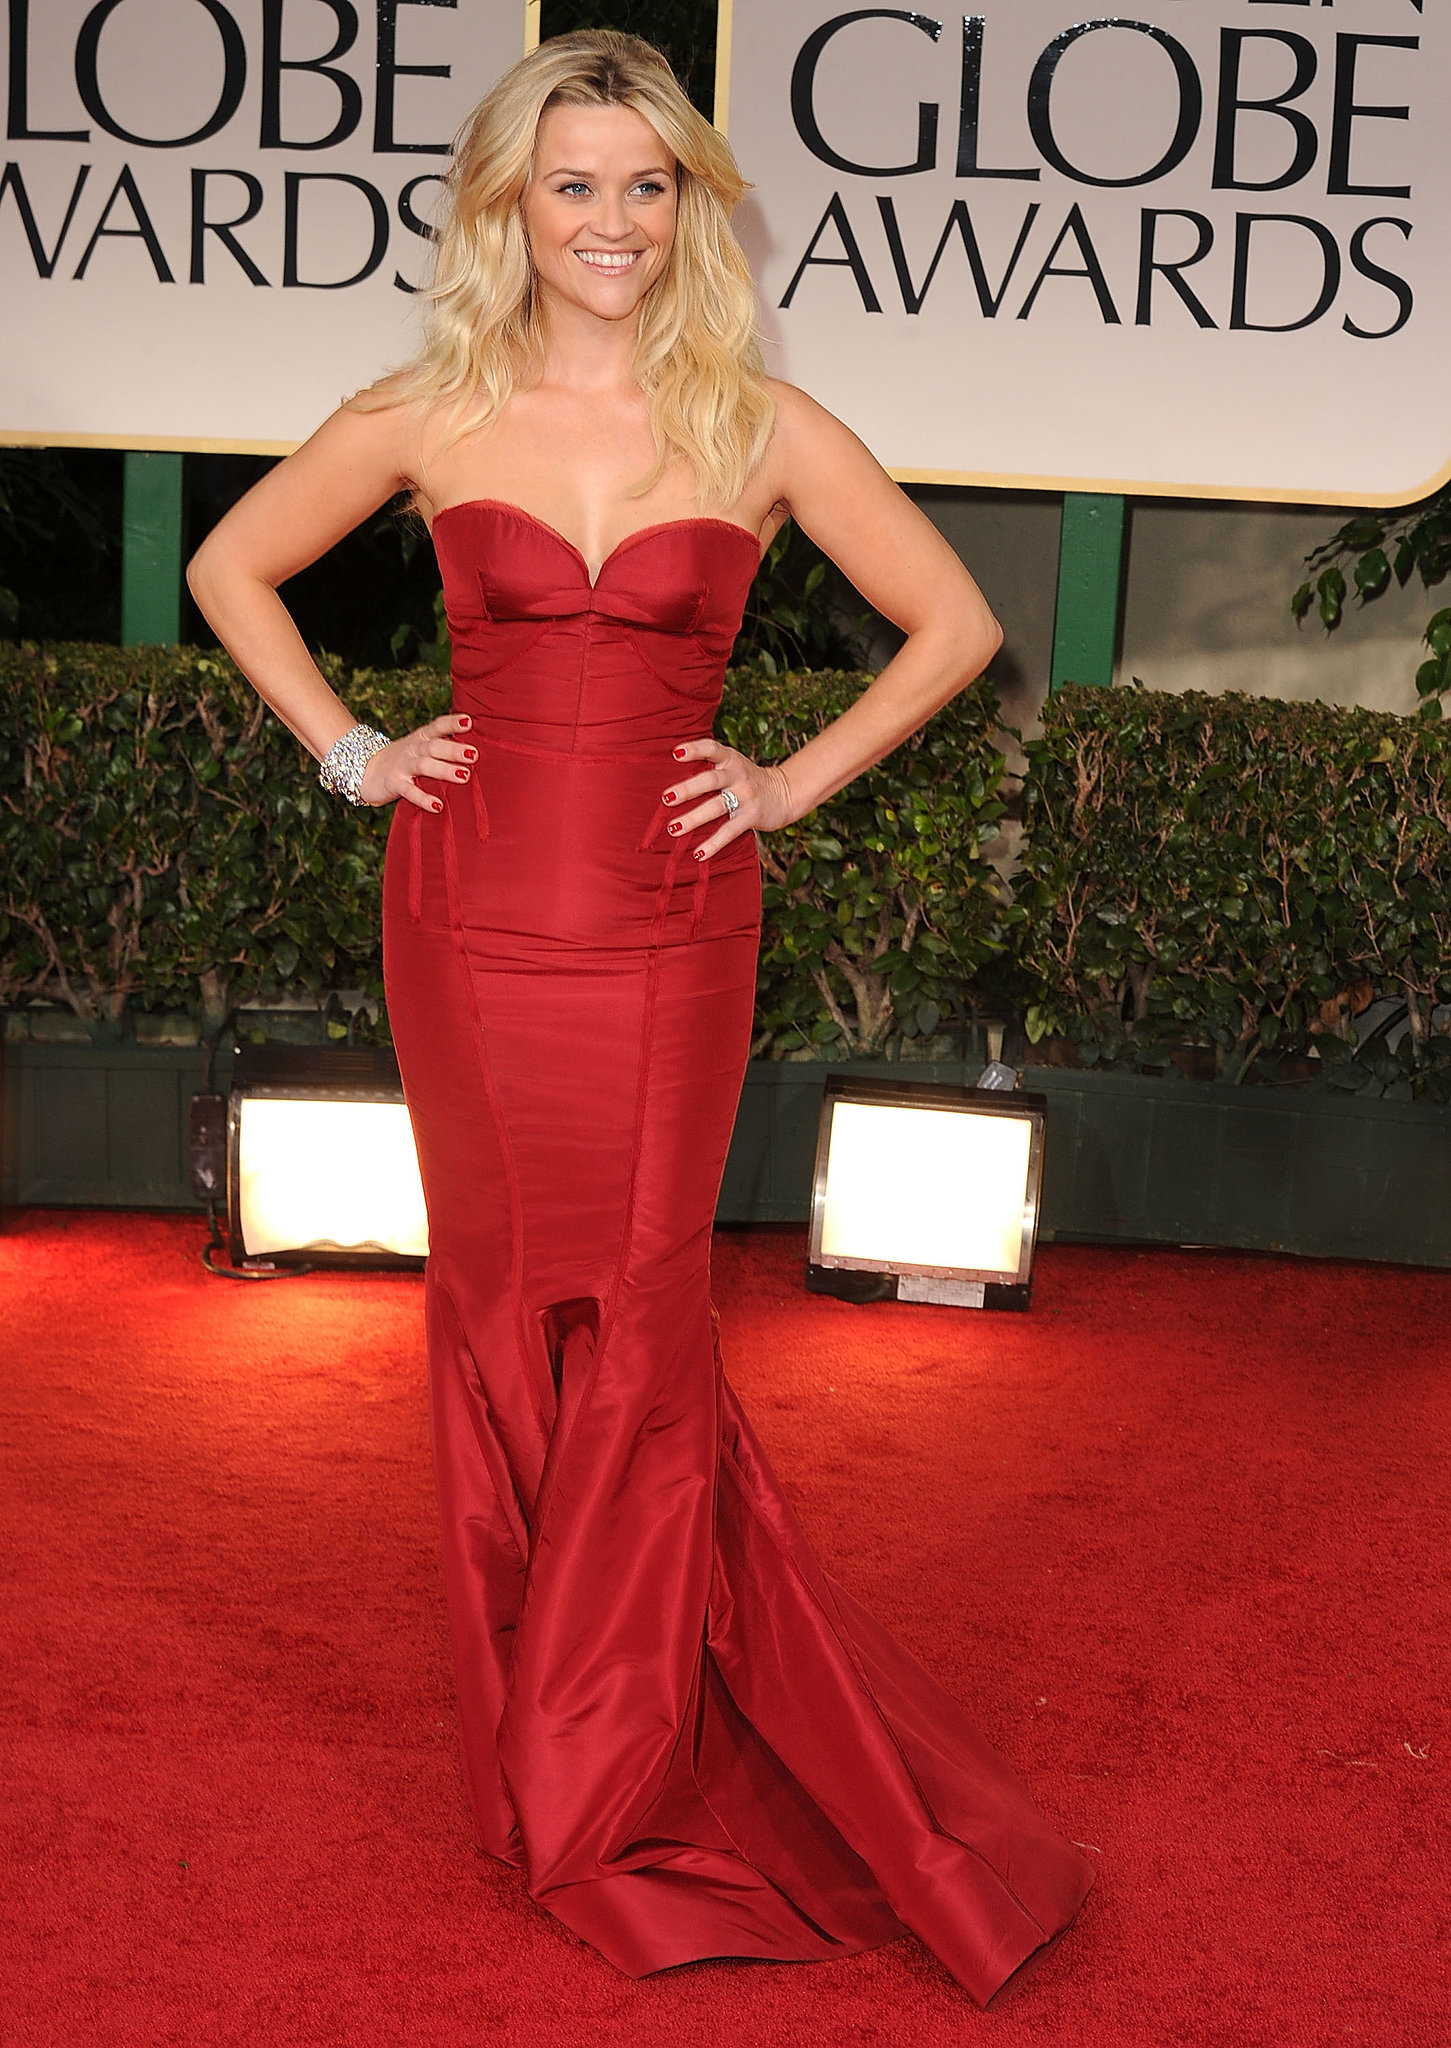 Reese Witherspoon in Zac Posen in 2012.